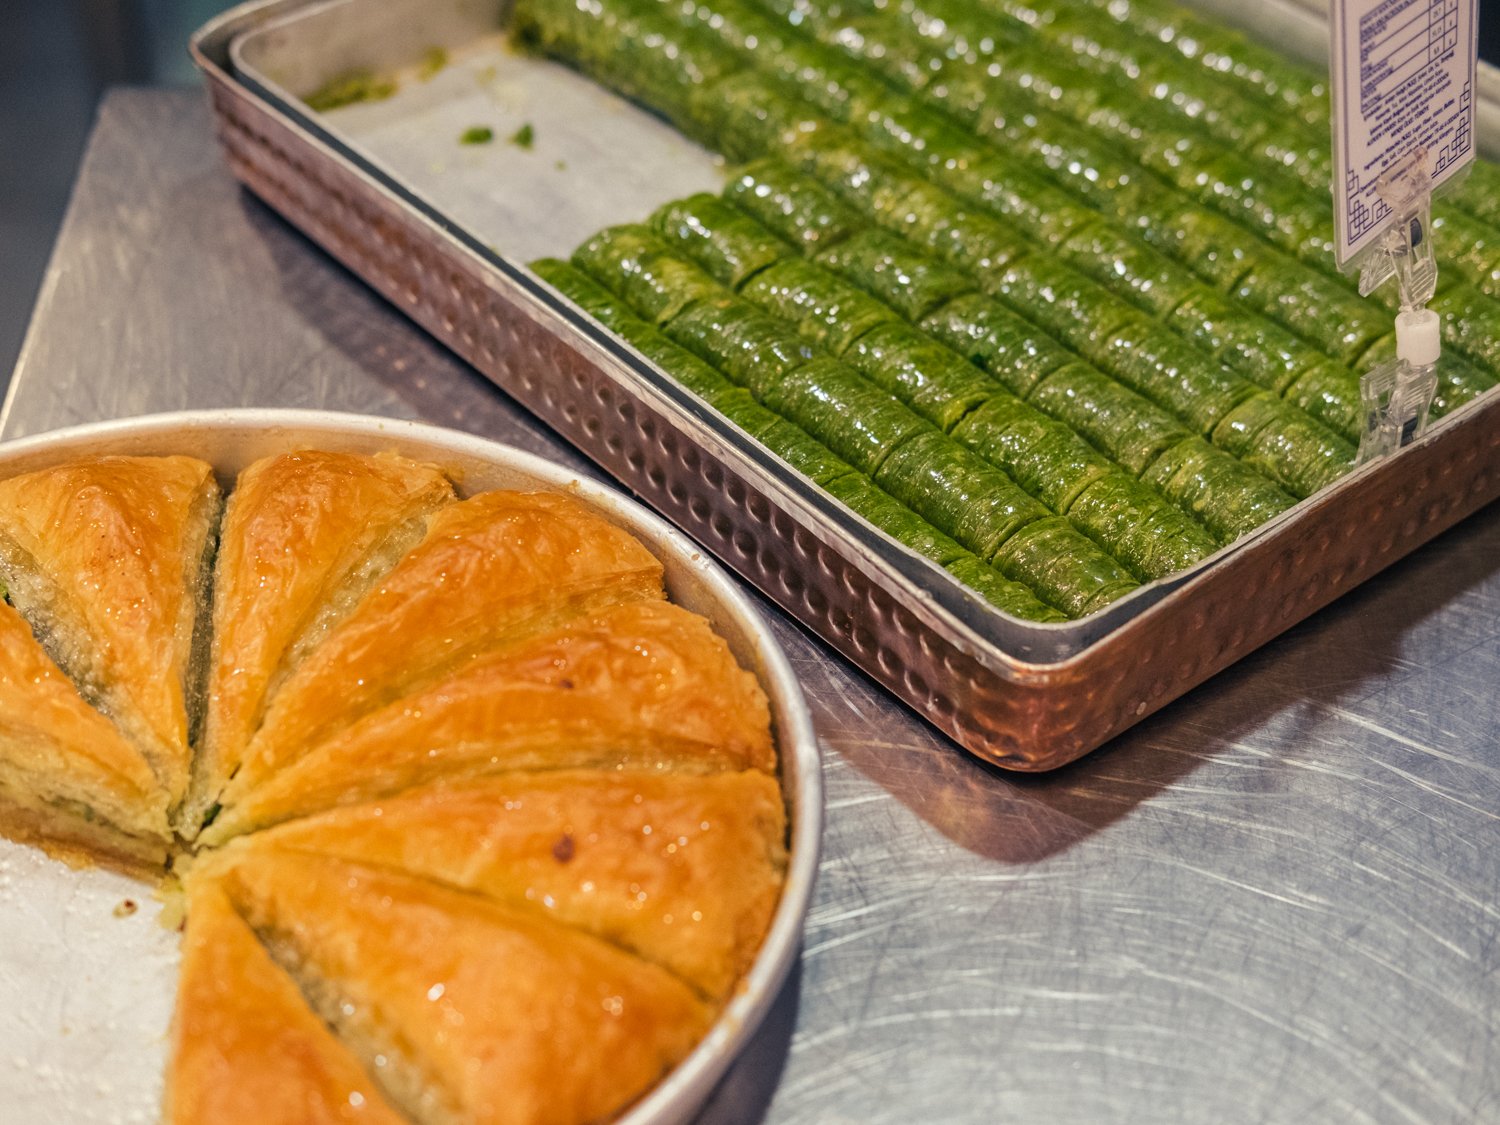 The World's Largest Baklava, Turkey